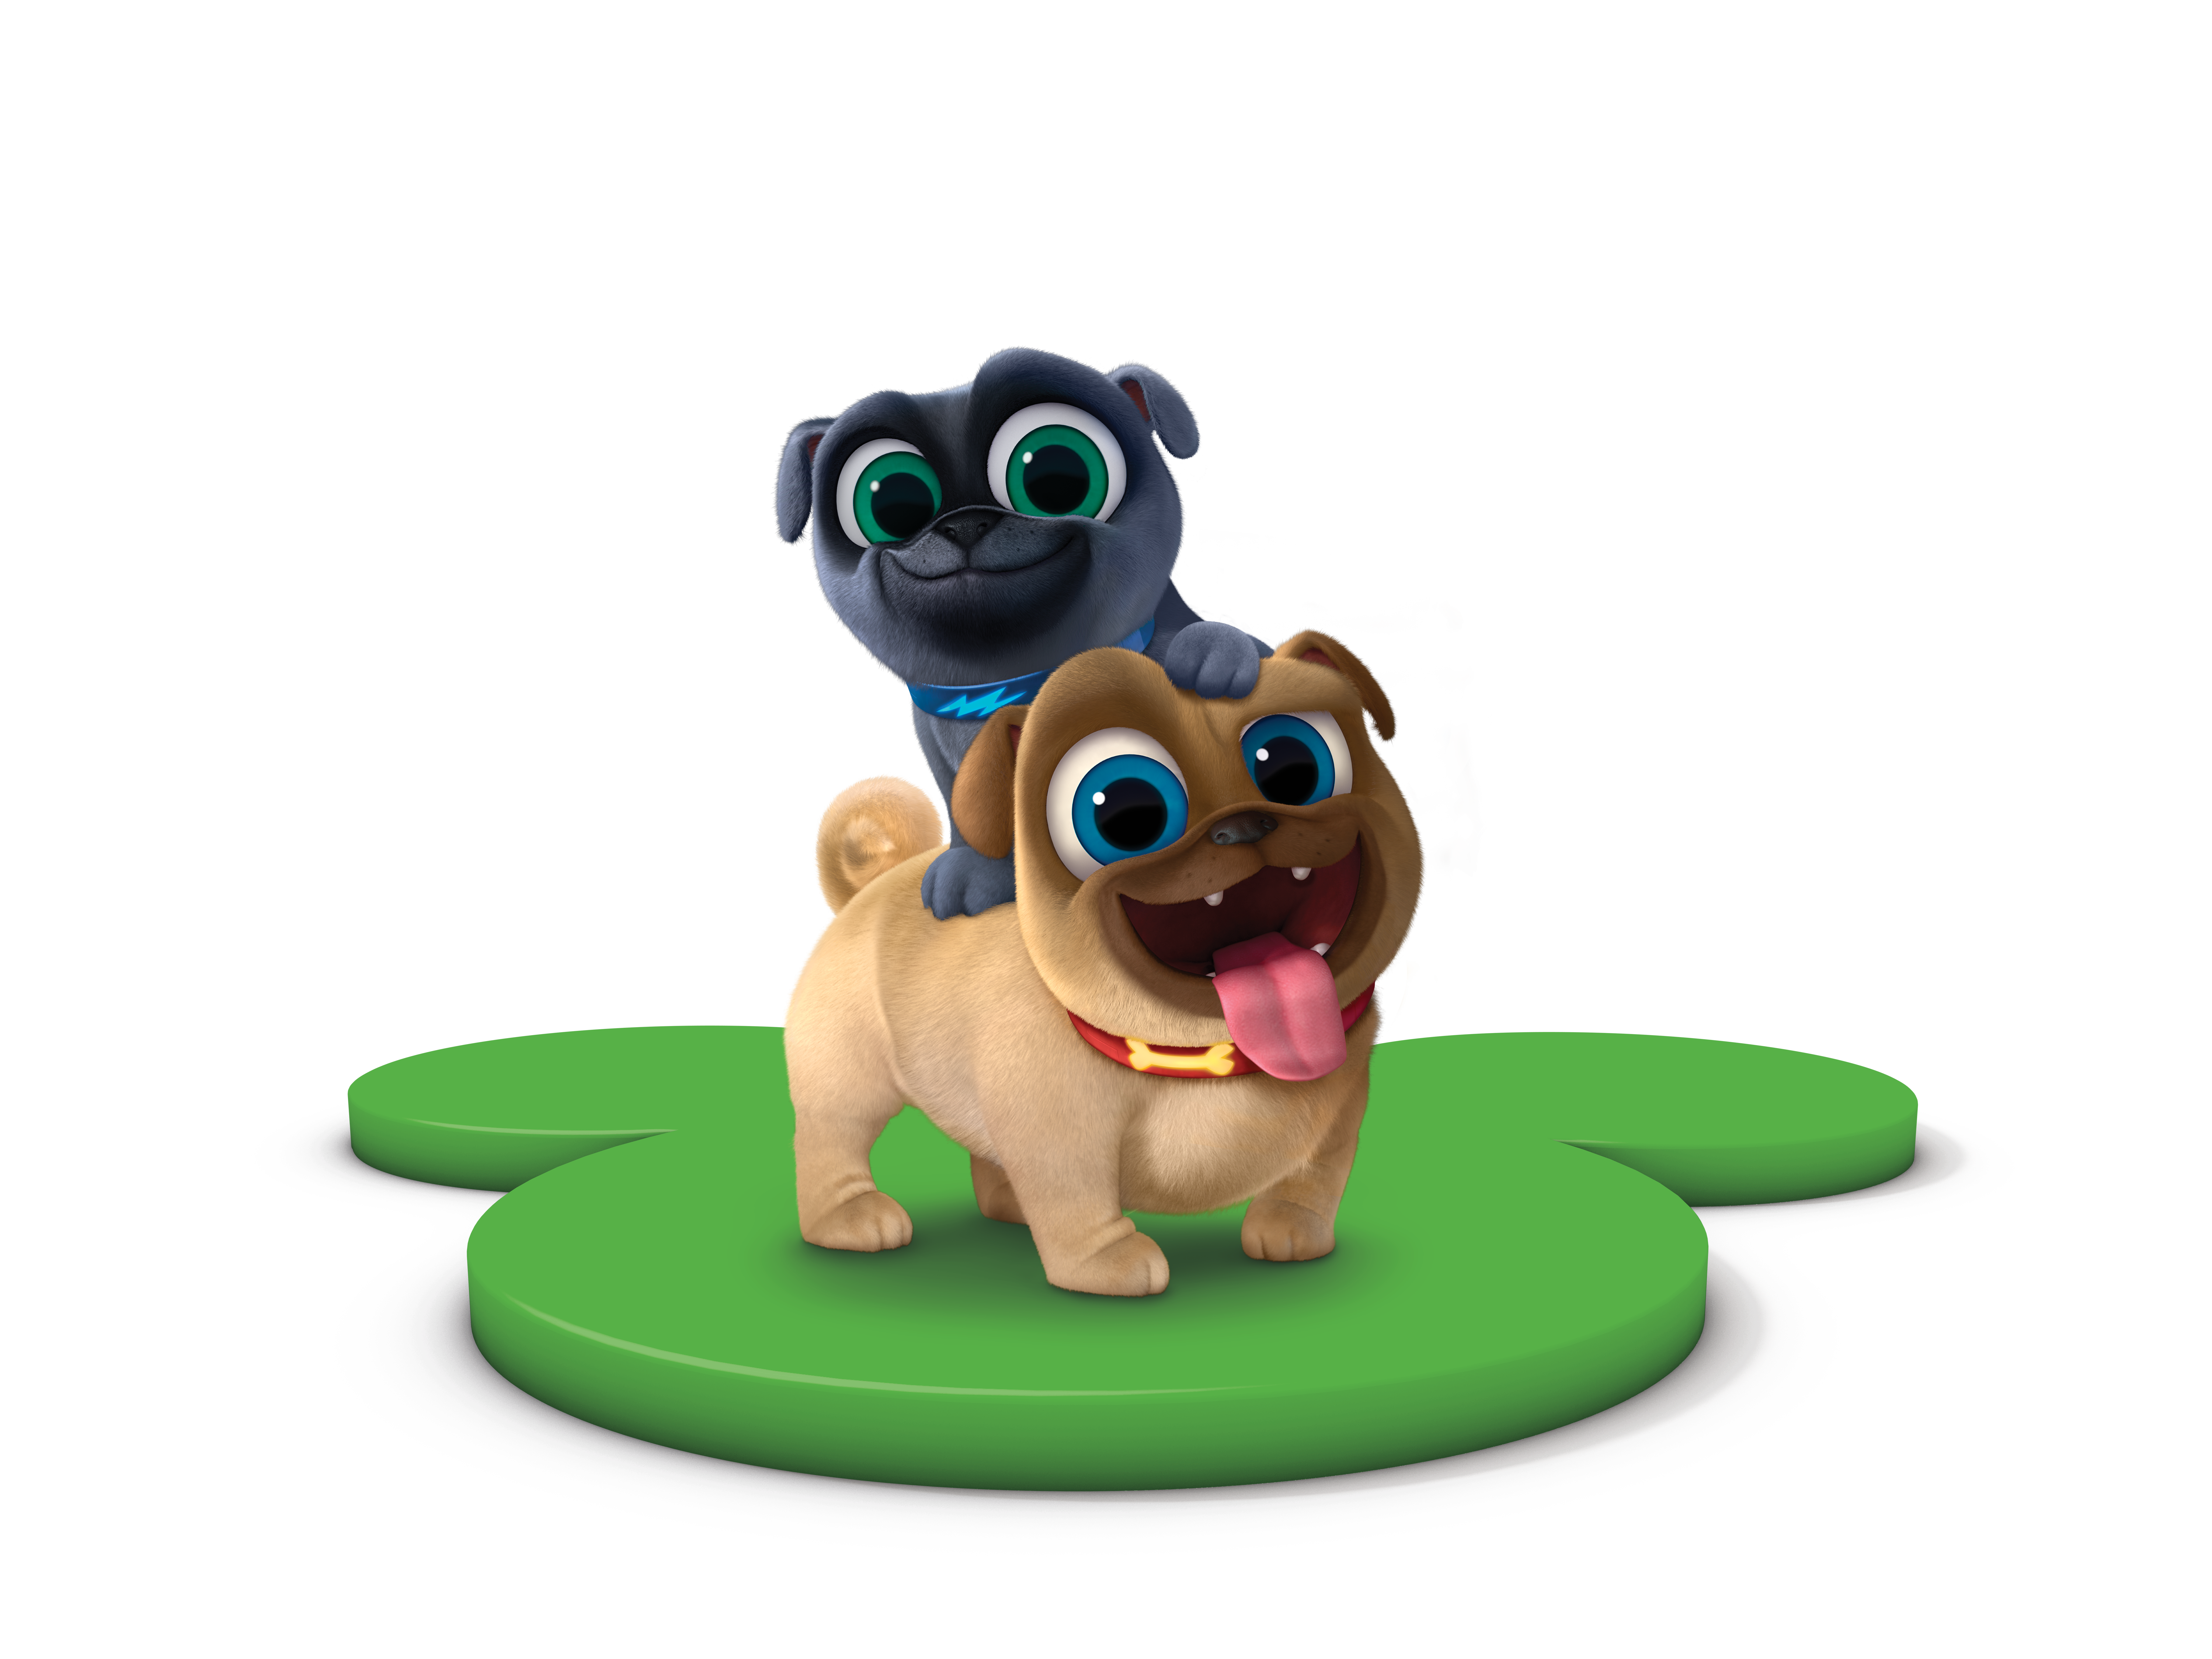 Puppy Dog Pals Humor Urodziny Dogs And Puppies Puppies Teacup Puppies